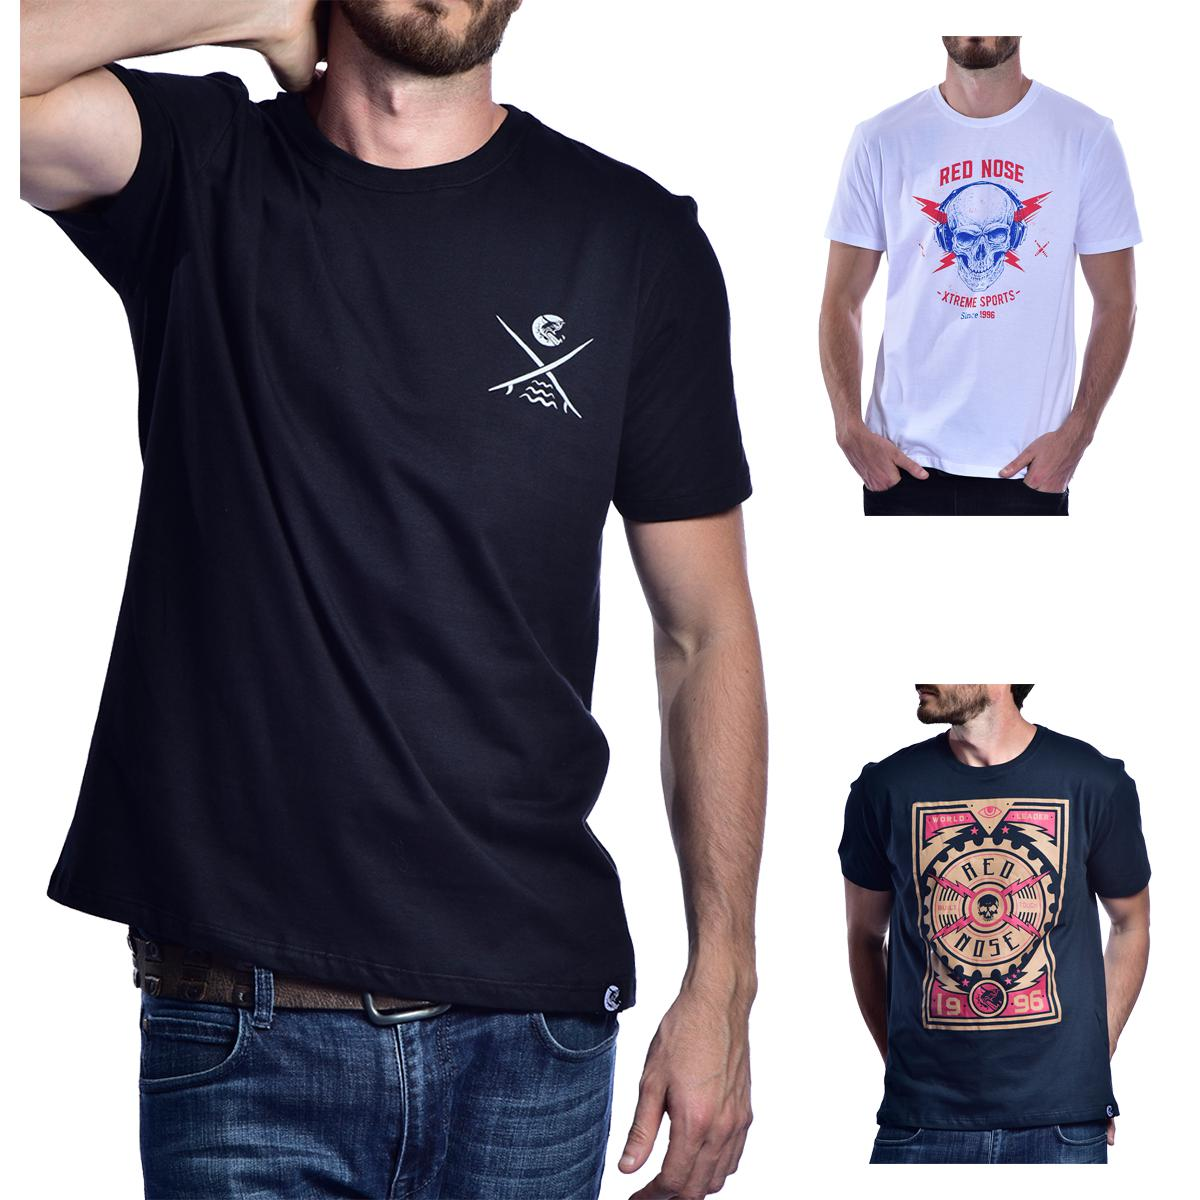 KIT 3 Camisetas Red Nose  - Preto e Branco e Azul P